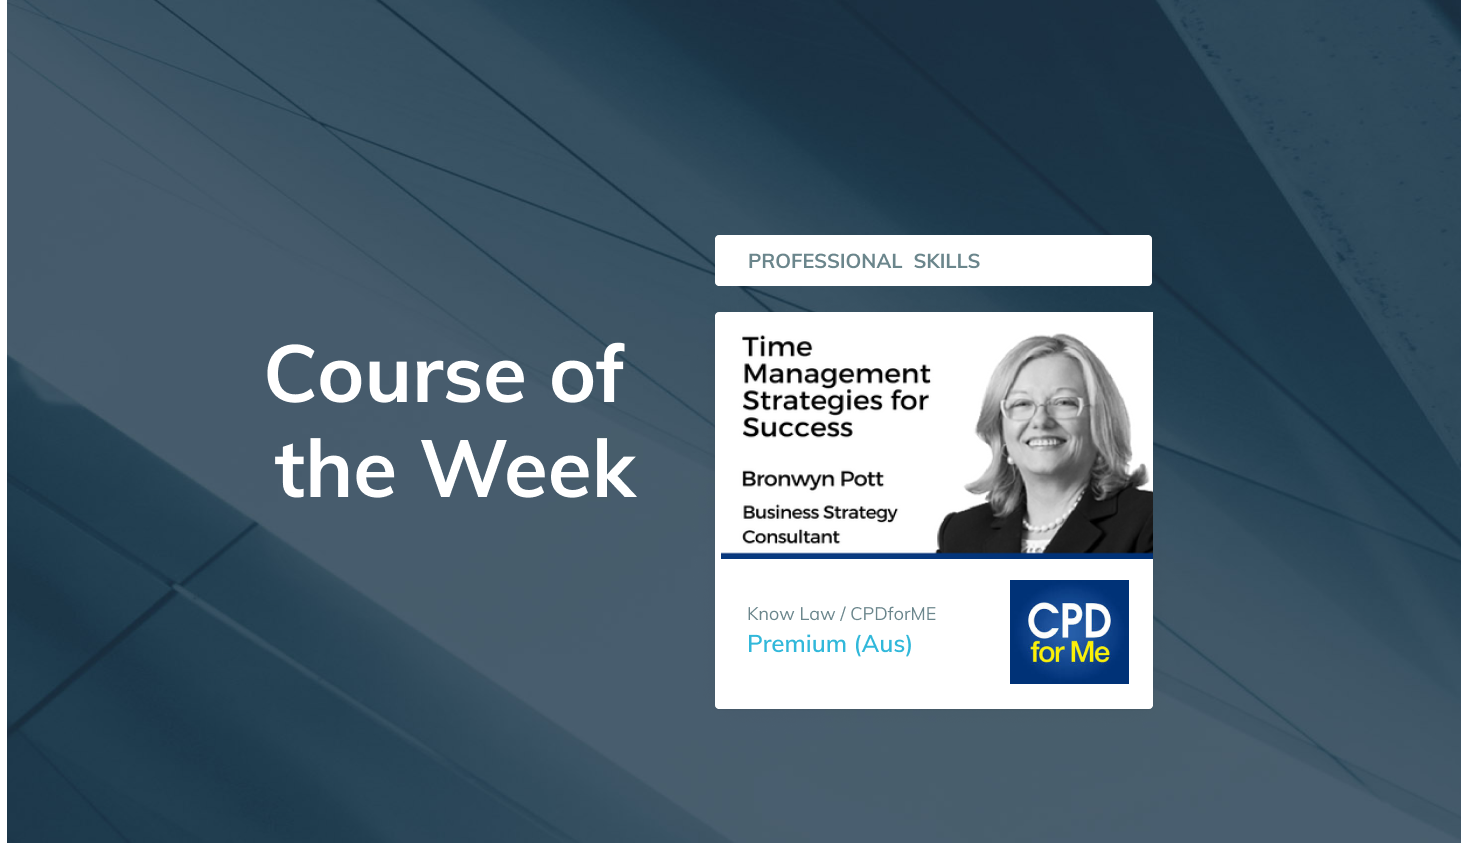 Course of the Week: CPD Professional Skills